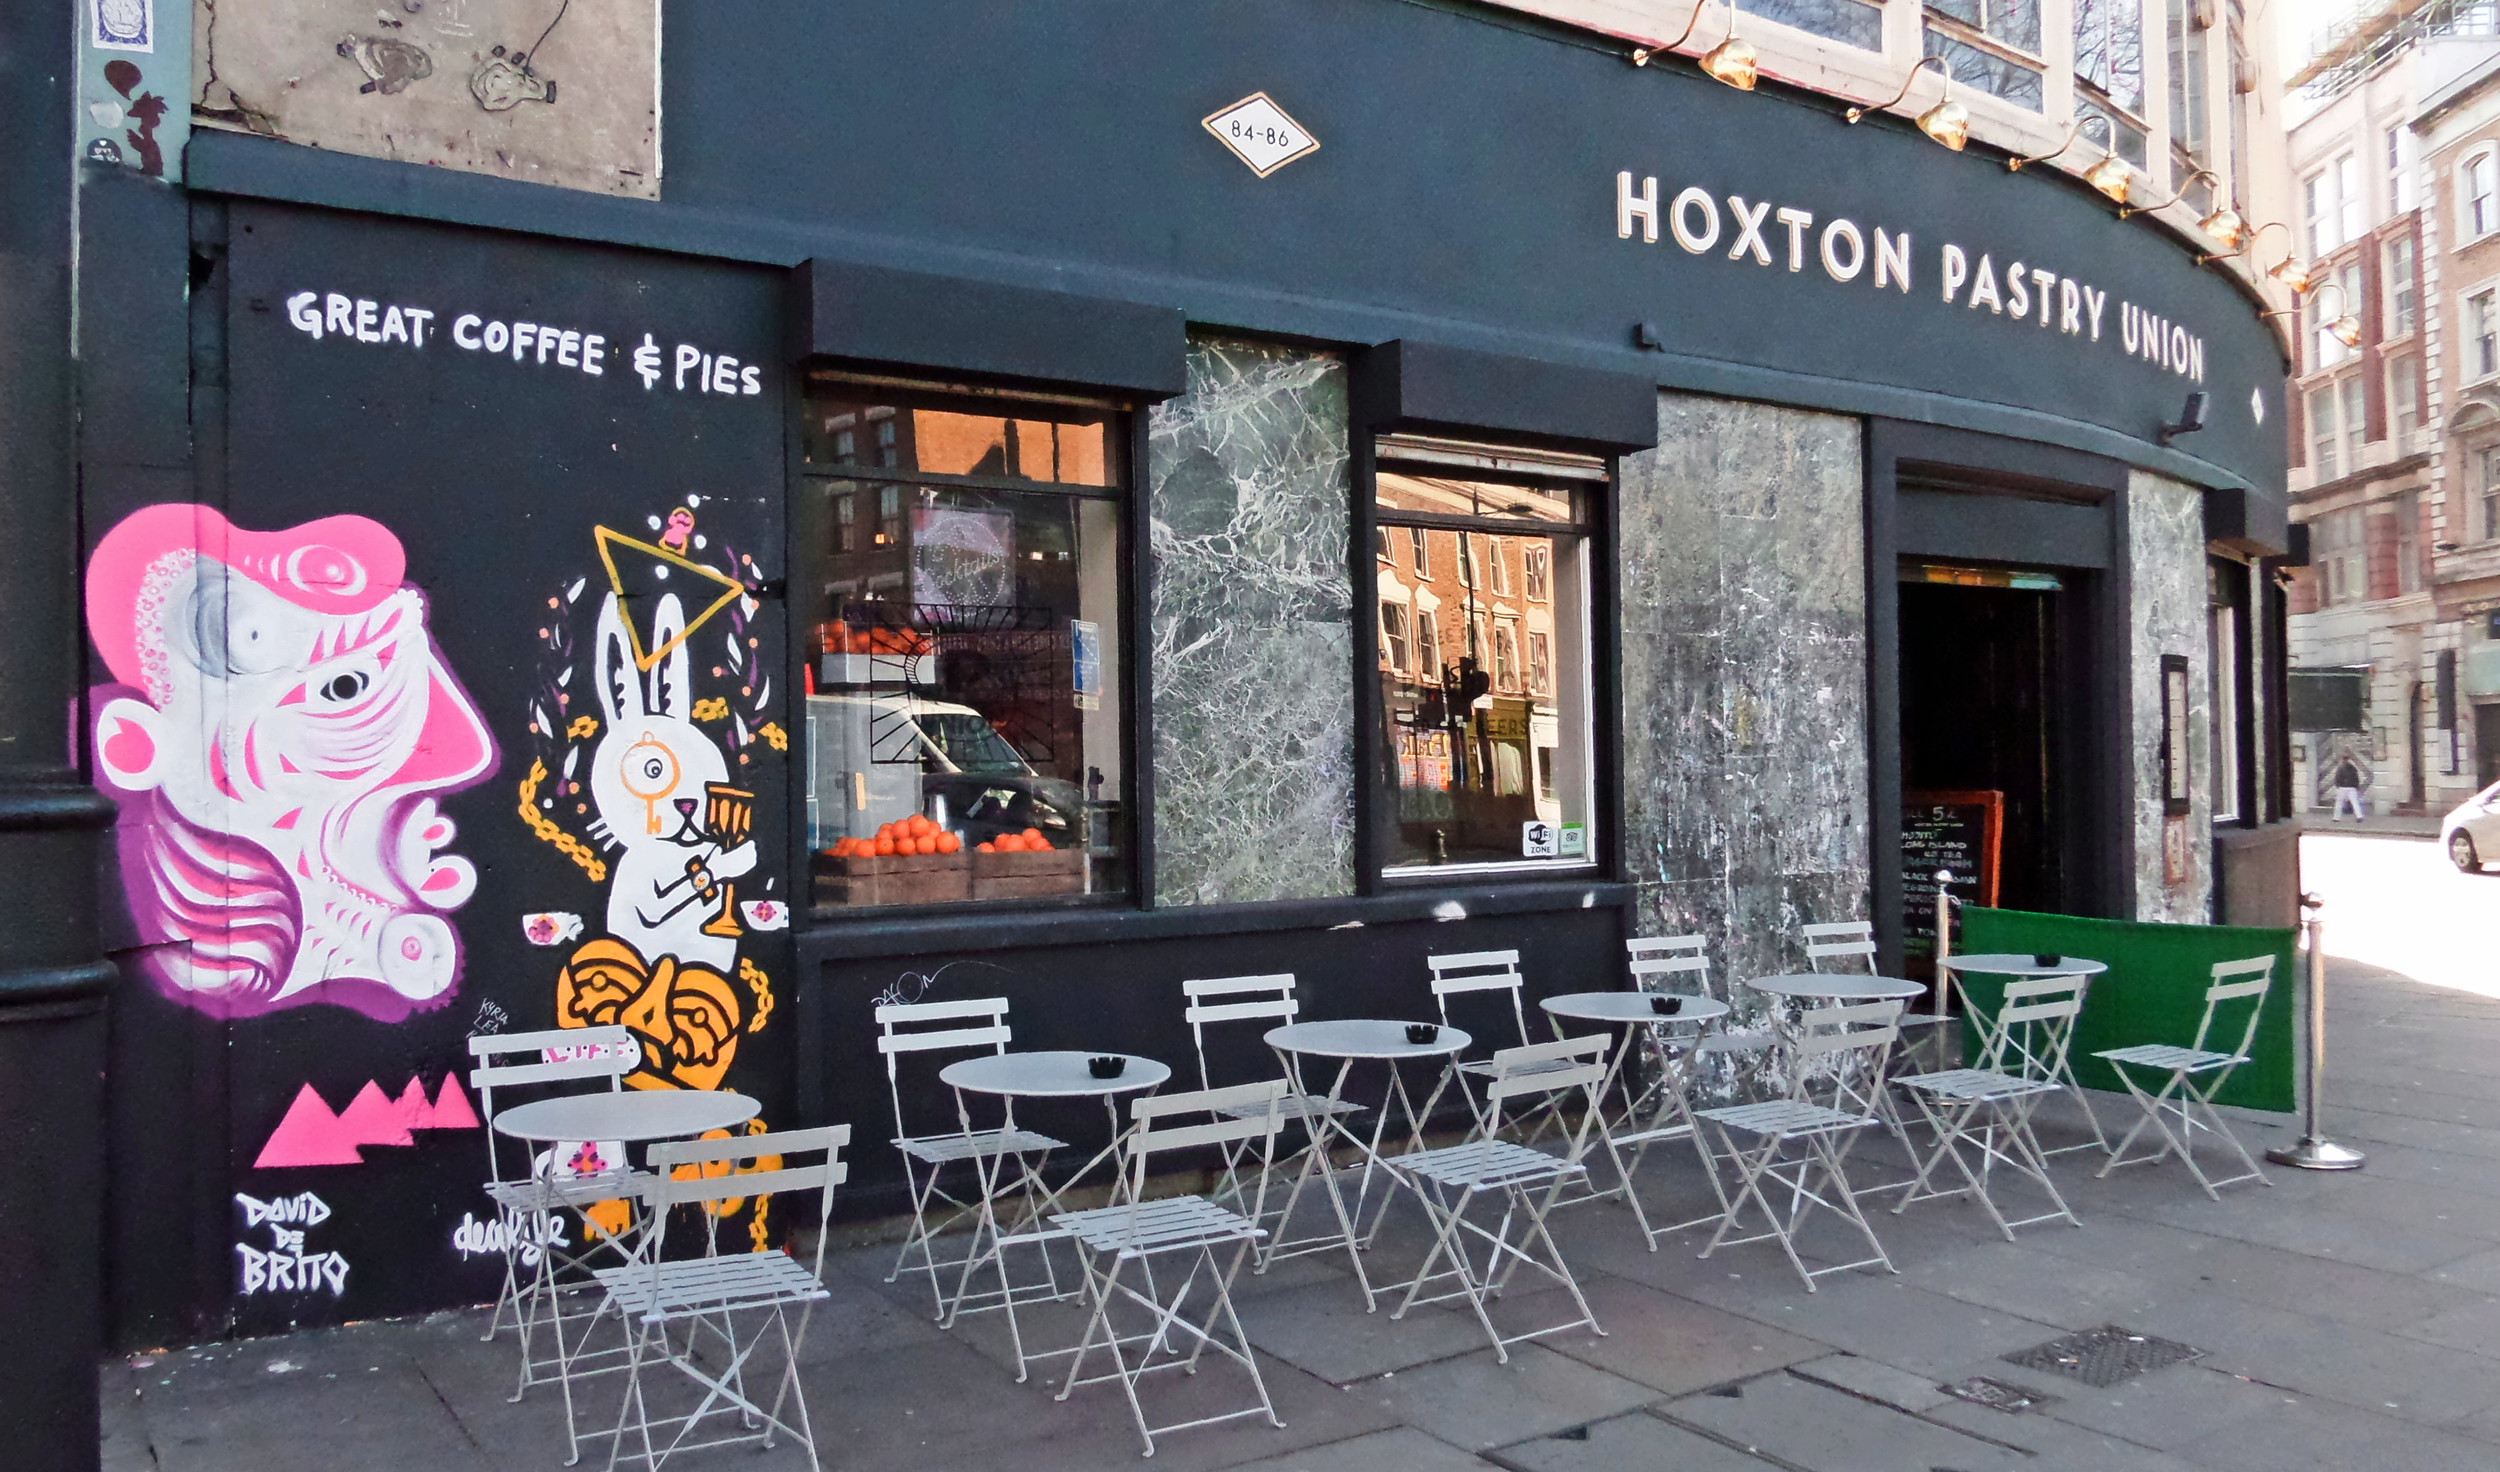 Hoxton Pastry Union on Old Street/Great Eastern Street